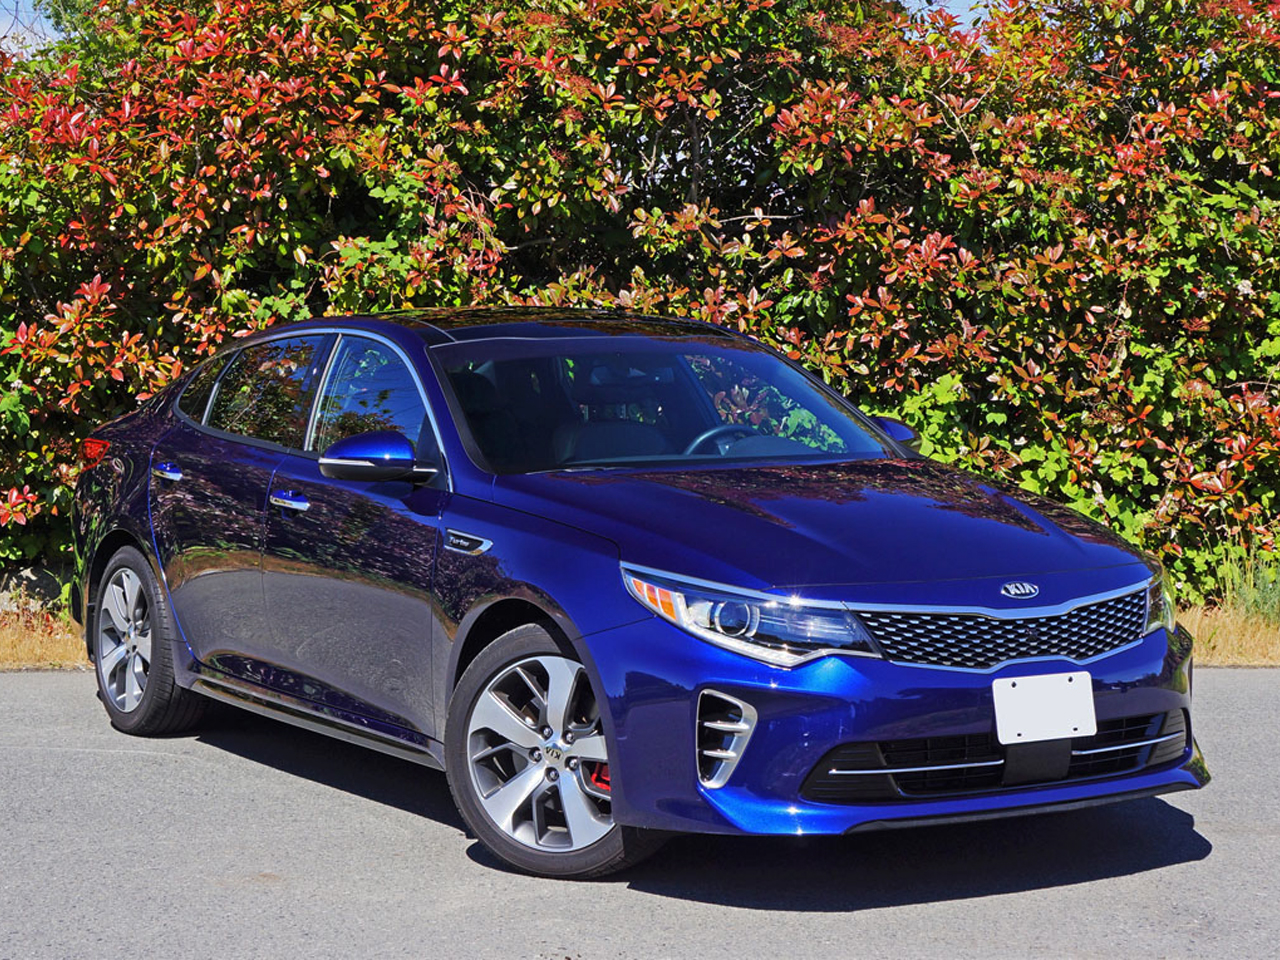 2016 kia optima sxl road test review carcostcanada. Black Bedroom Furniture Sets. Home Design Ideas